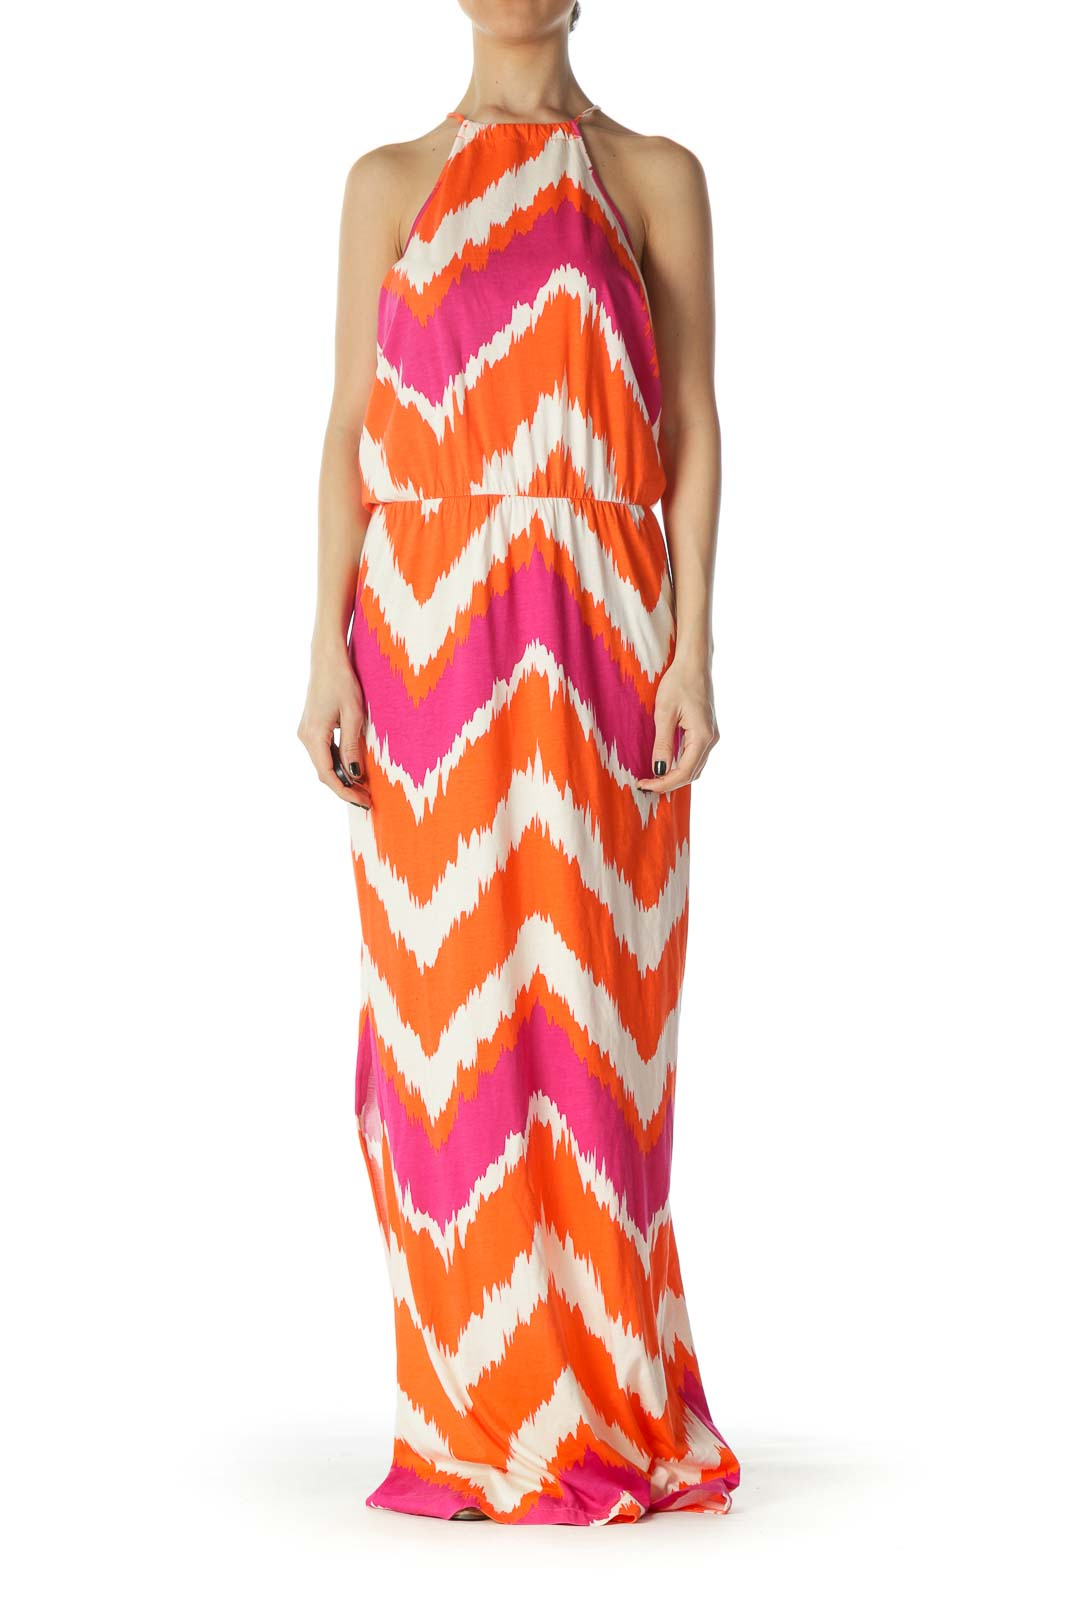 Hot Pink and Orange Halter Maxi Dress